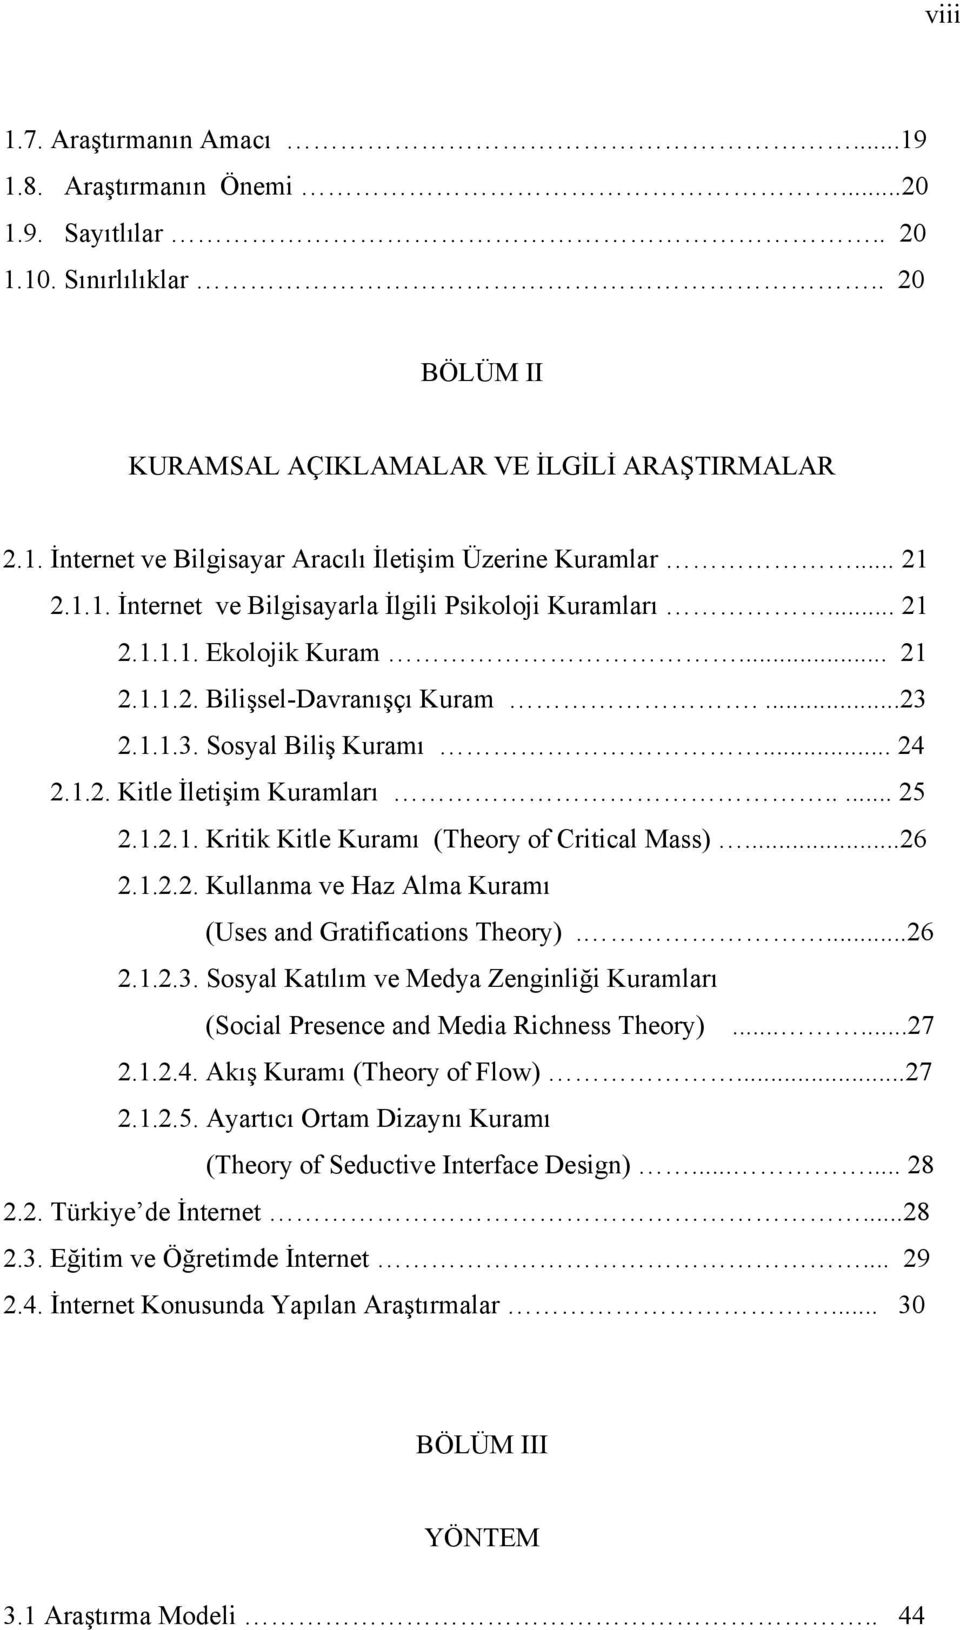 .... 25 2.1.2.1. Kritik Kitle Kuramı (Theory of Critical Mass)...26 2.1.2.2. Kullanma ve Haz Alma Kuramı (Uses and Gratifications Theory)....26 2.1.2.3.